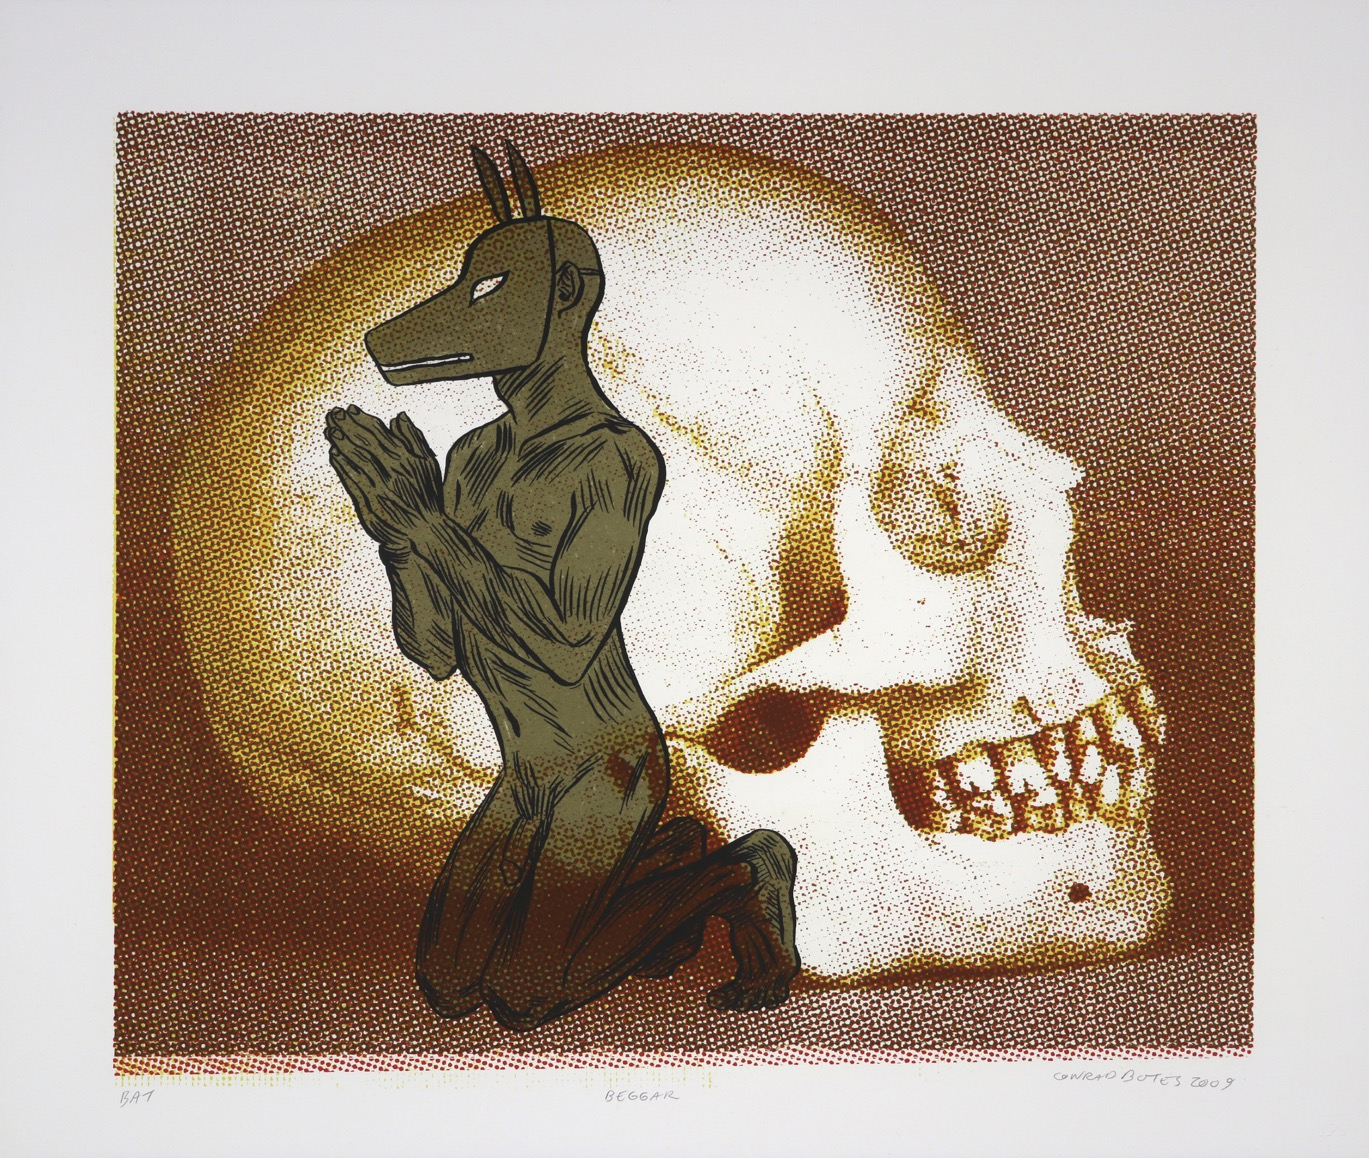 Naked man wearing dog mask kneeling in prayer in front of enlarged photograph of human skull.